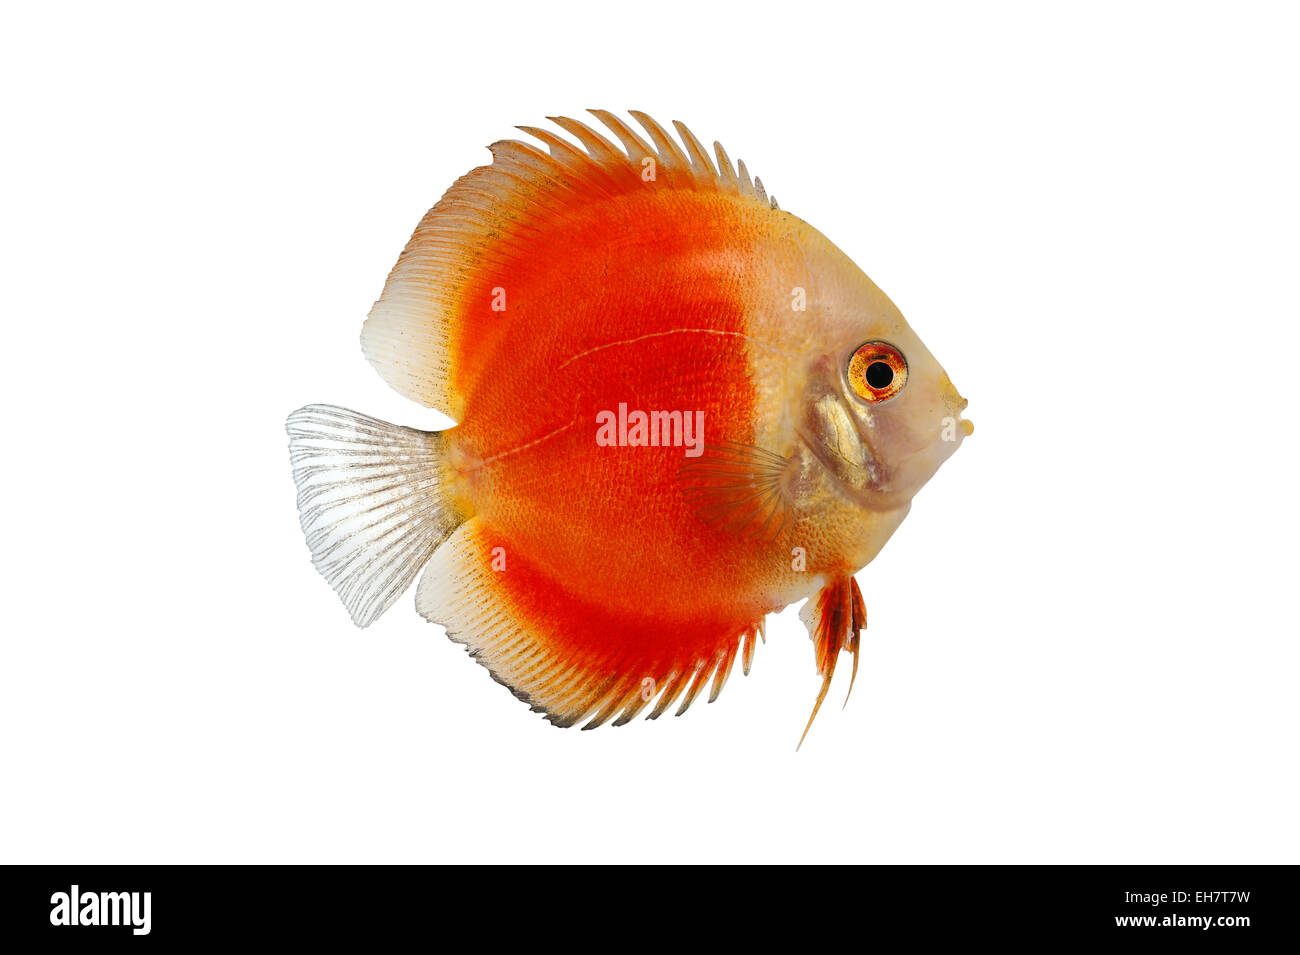 Discus Fish White Background Stock Photos & Discus Fish White ...